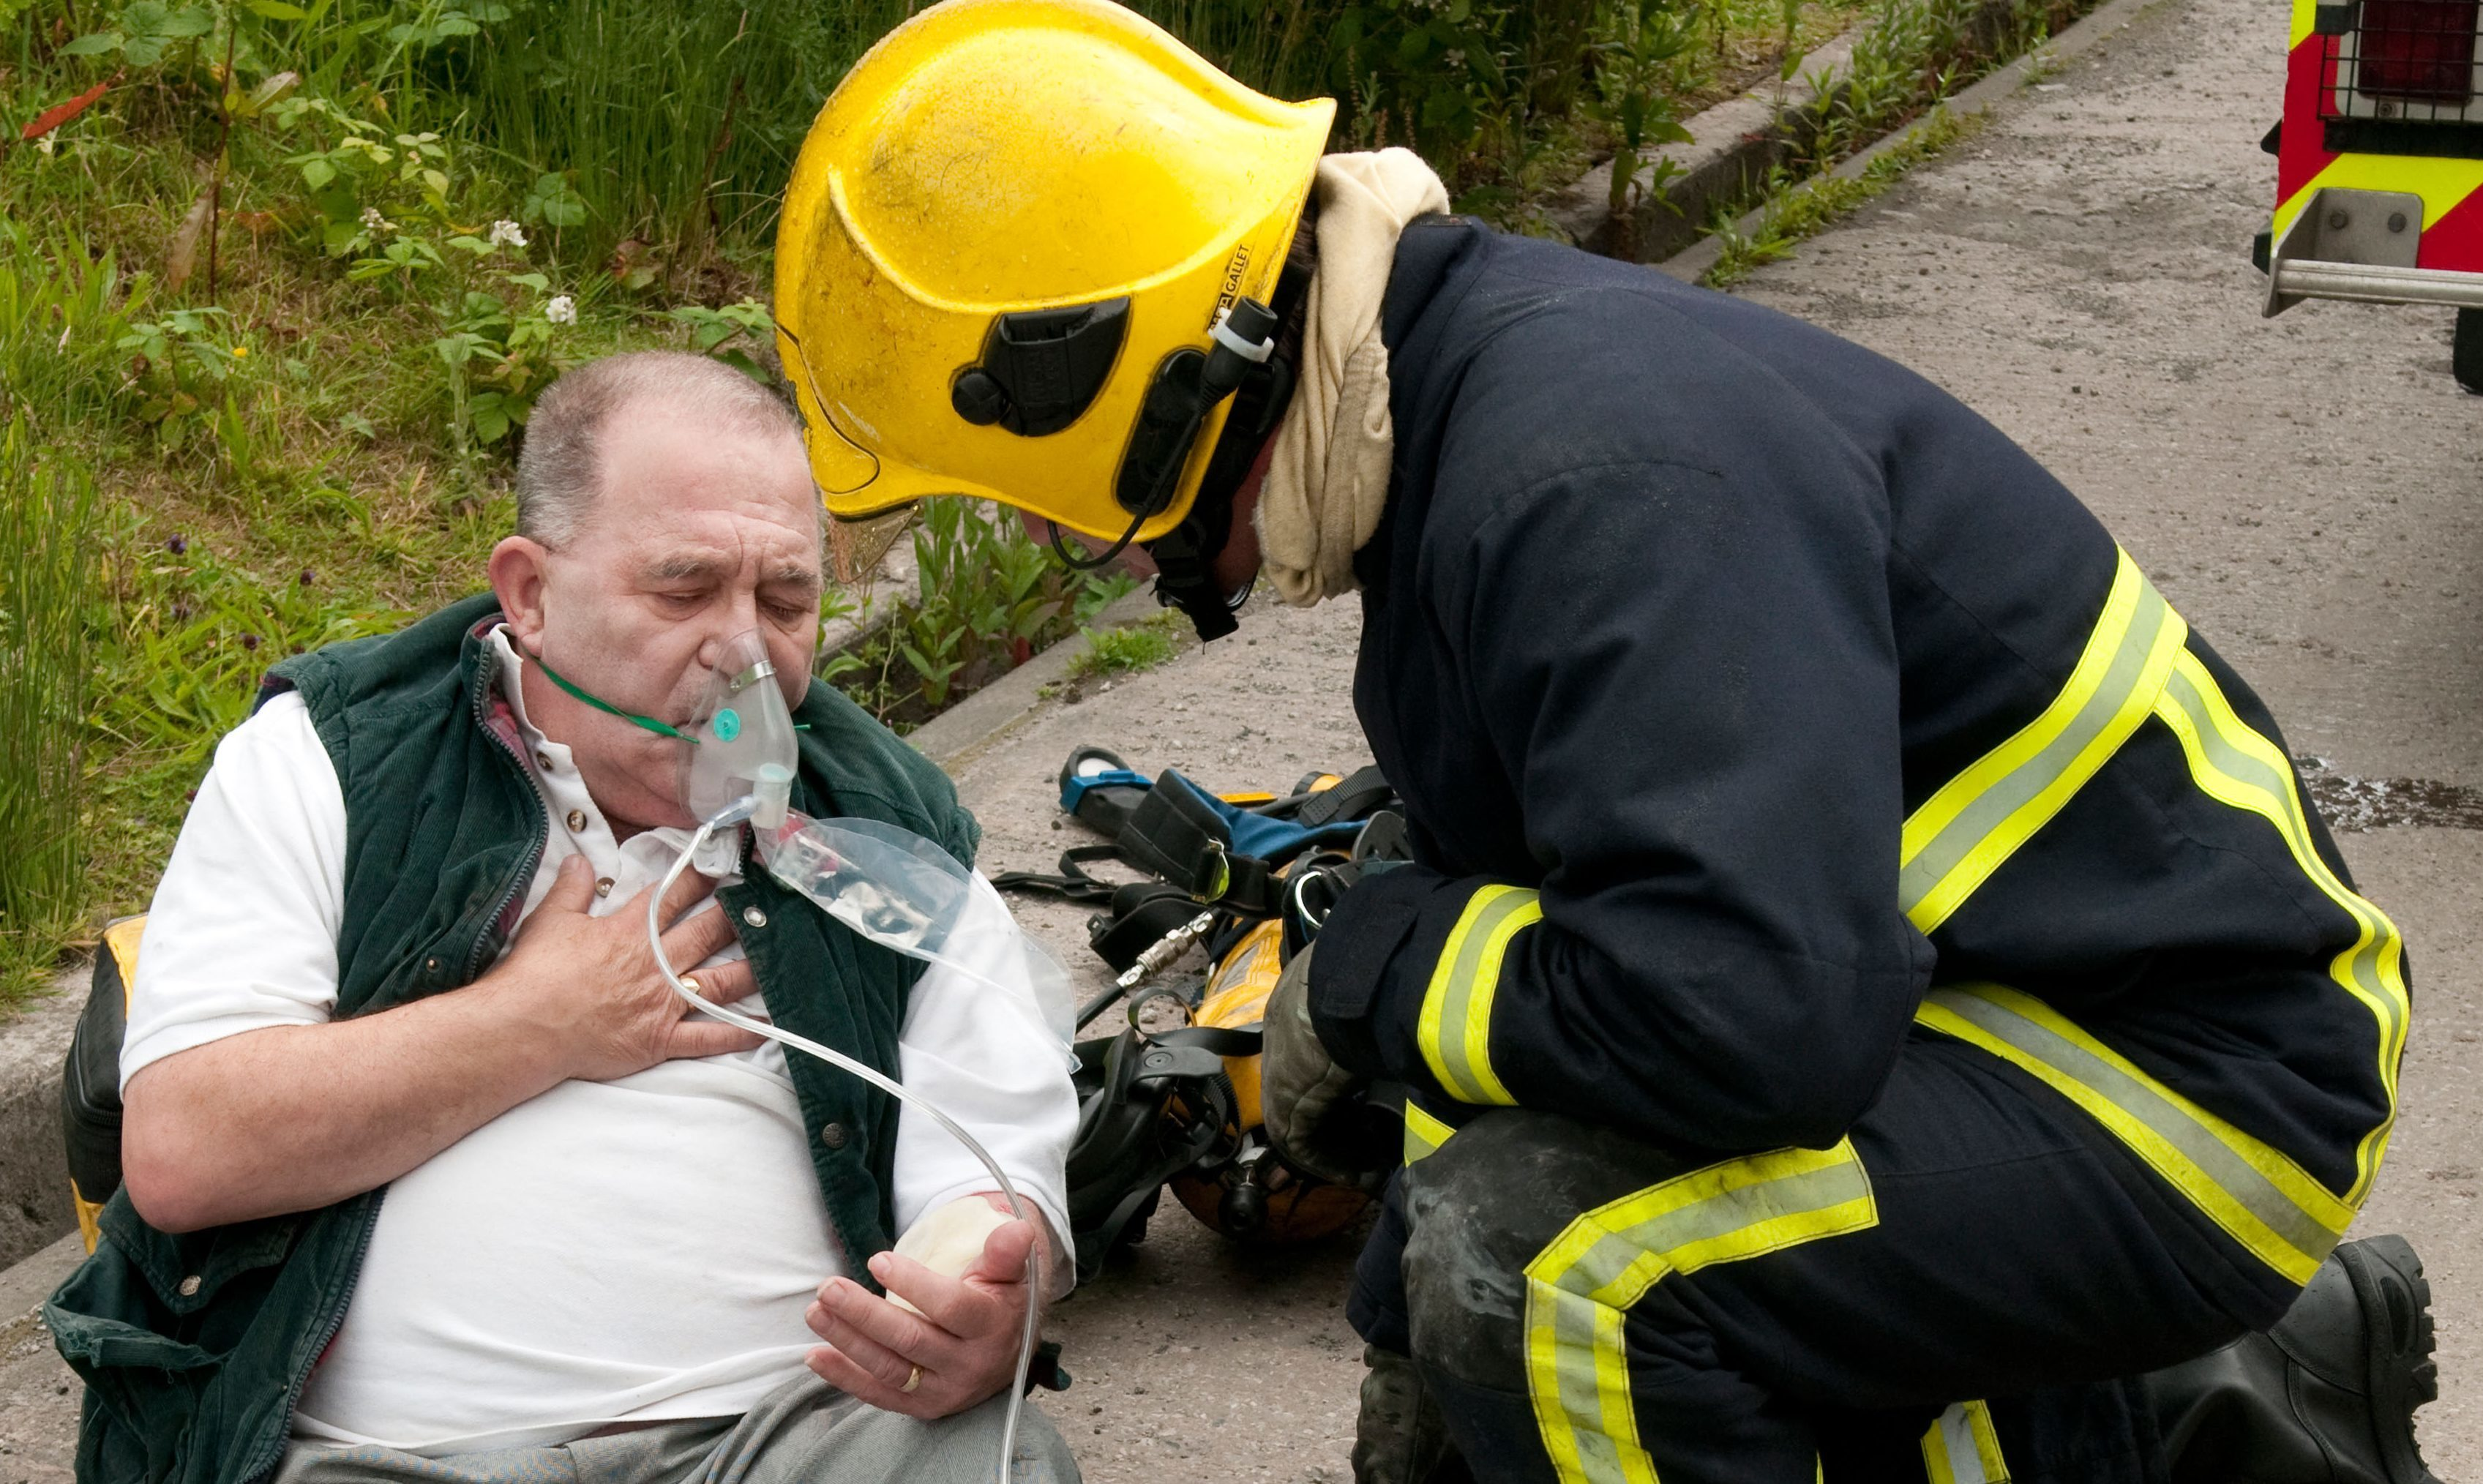 Firefighters could be set for increased duties (Alamy)